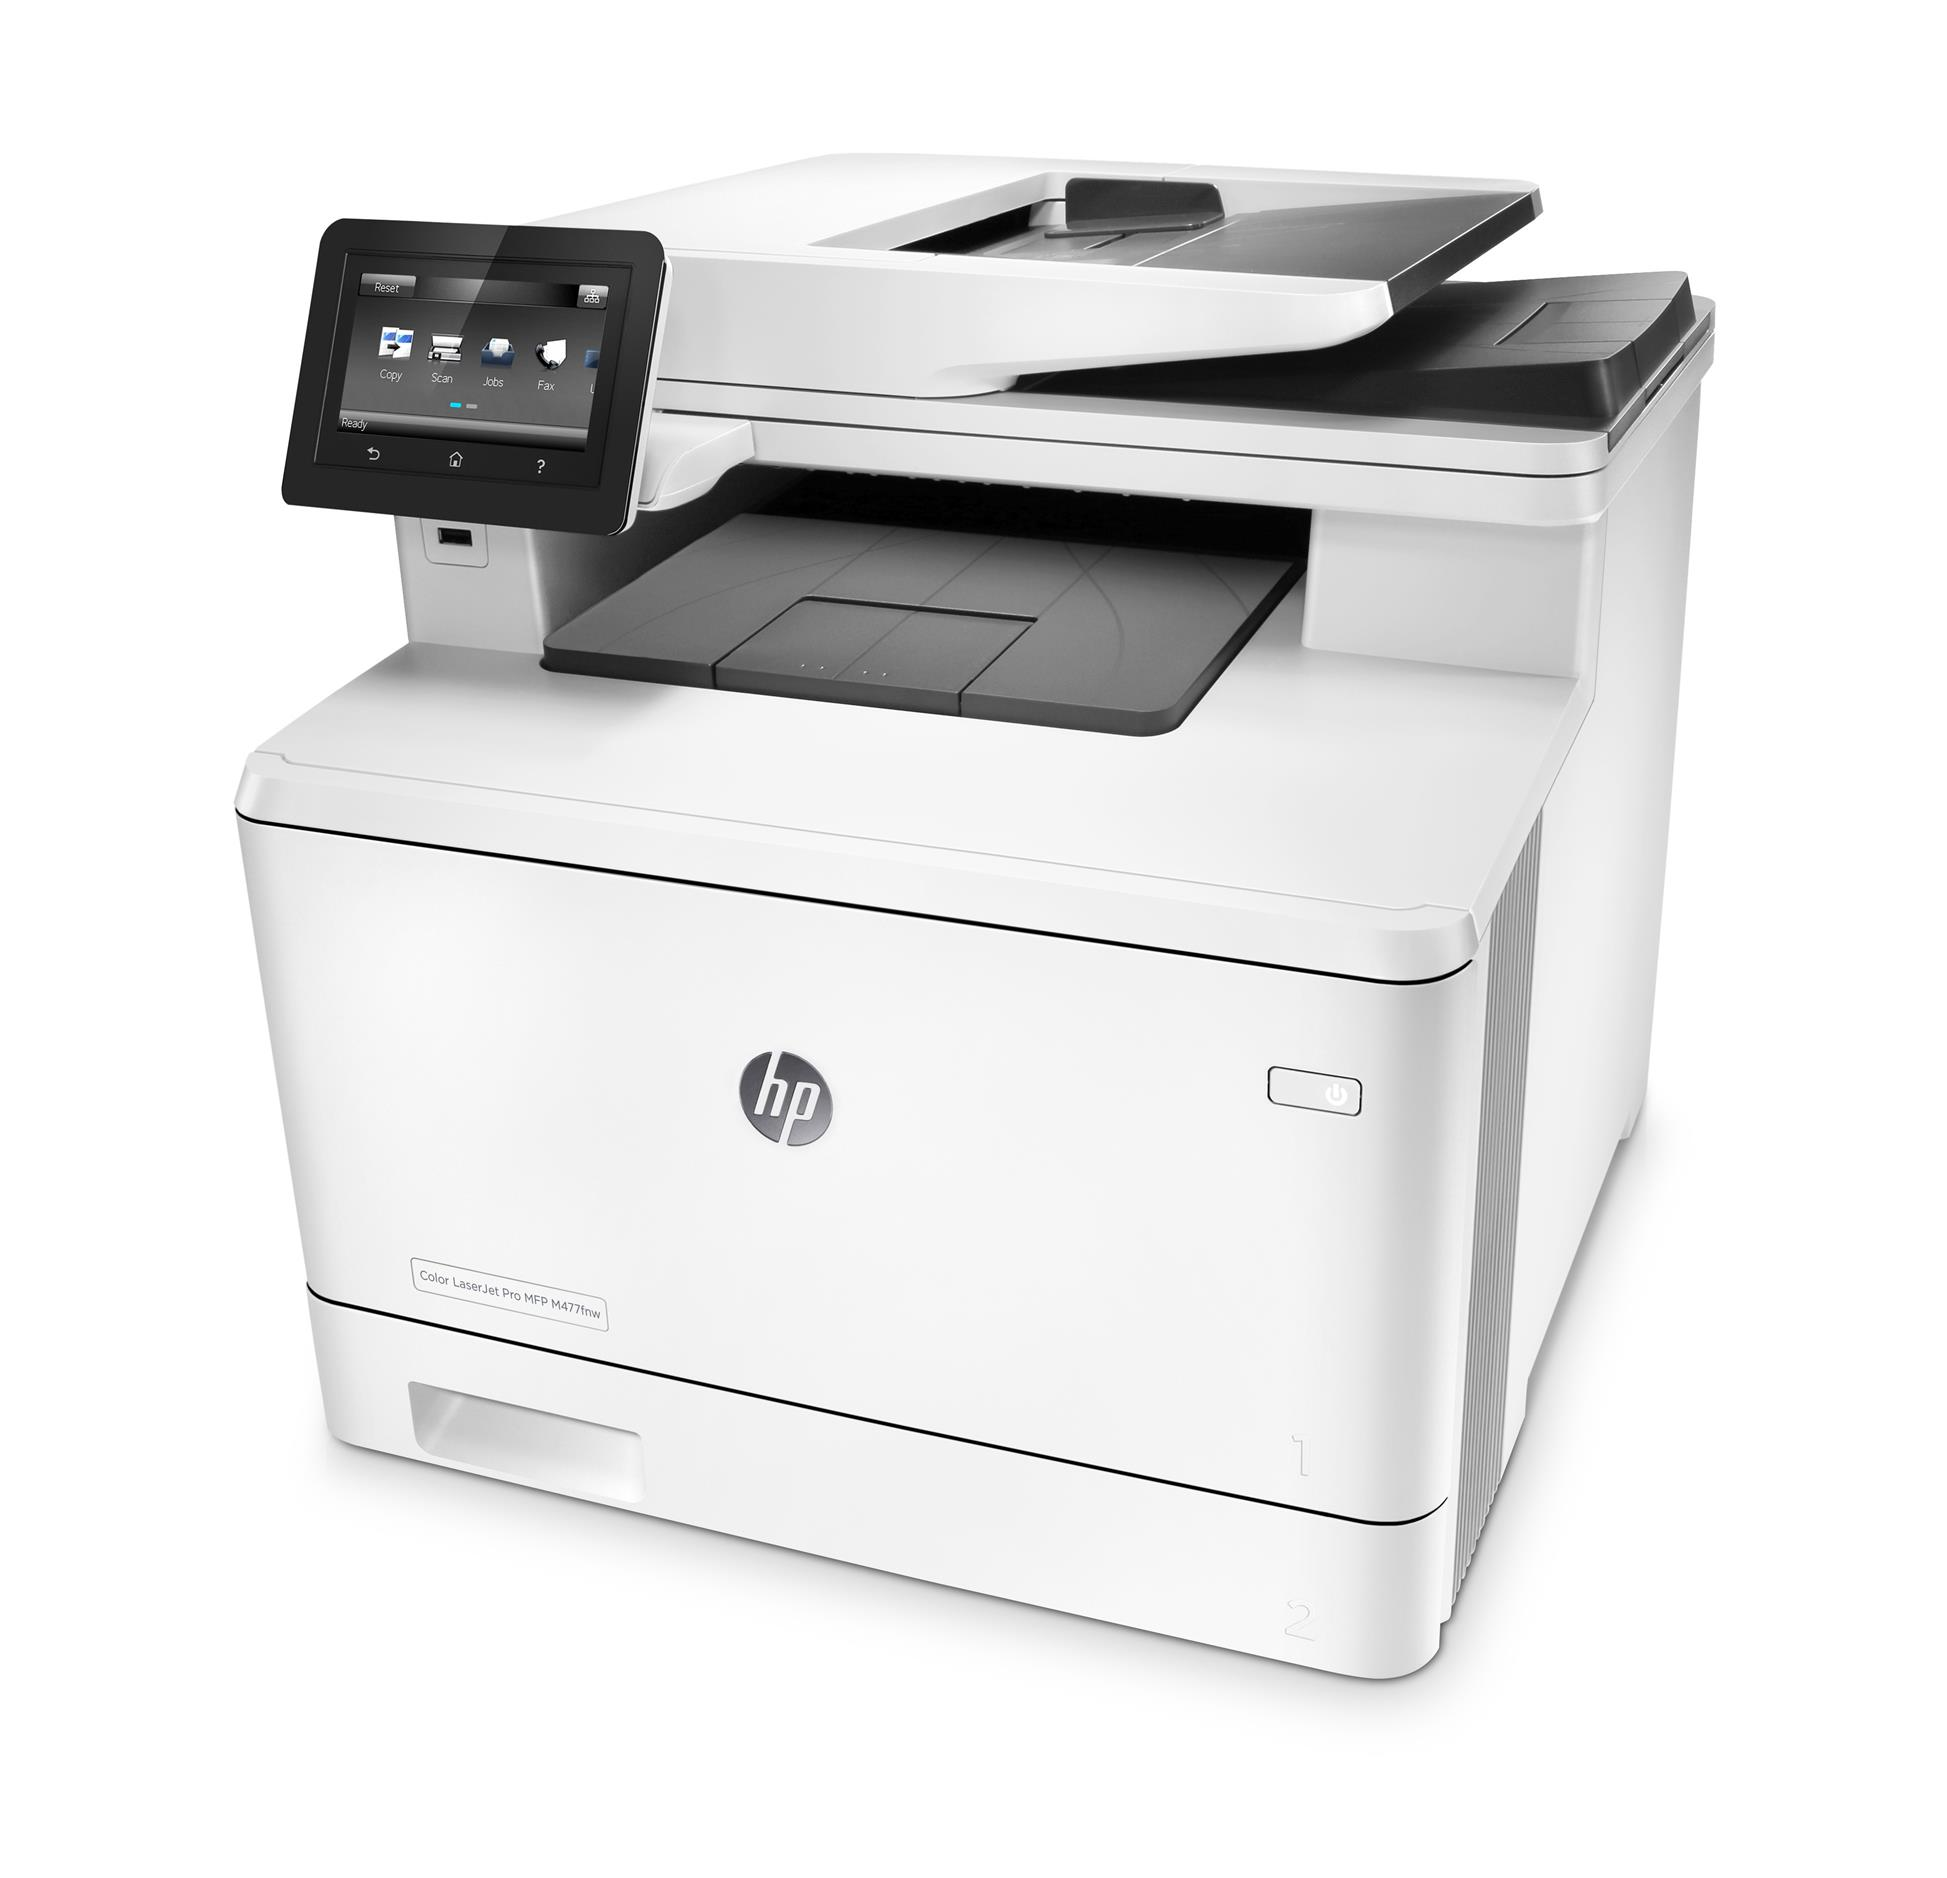 HP Color LaserJet Pro 400 MFP M477fdw Printer (CF379A)